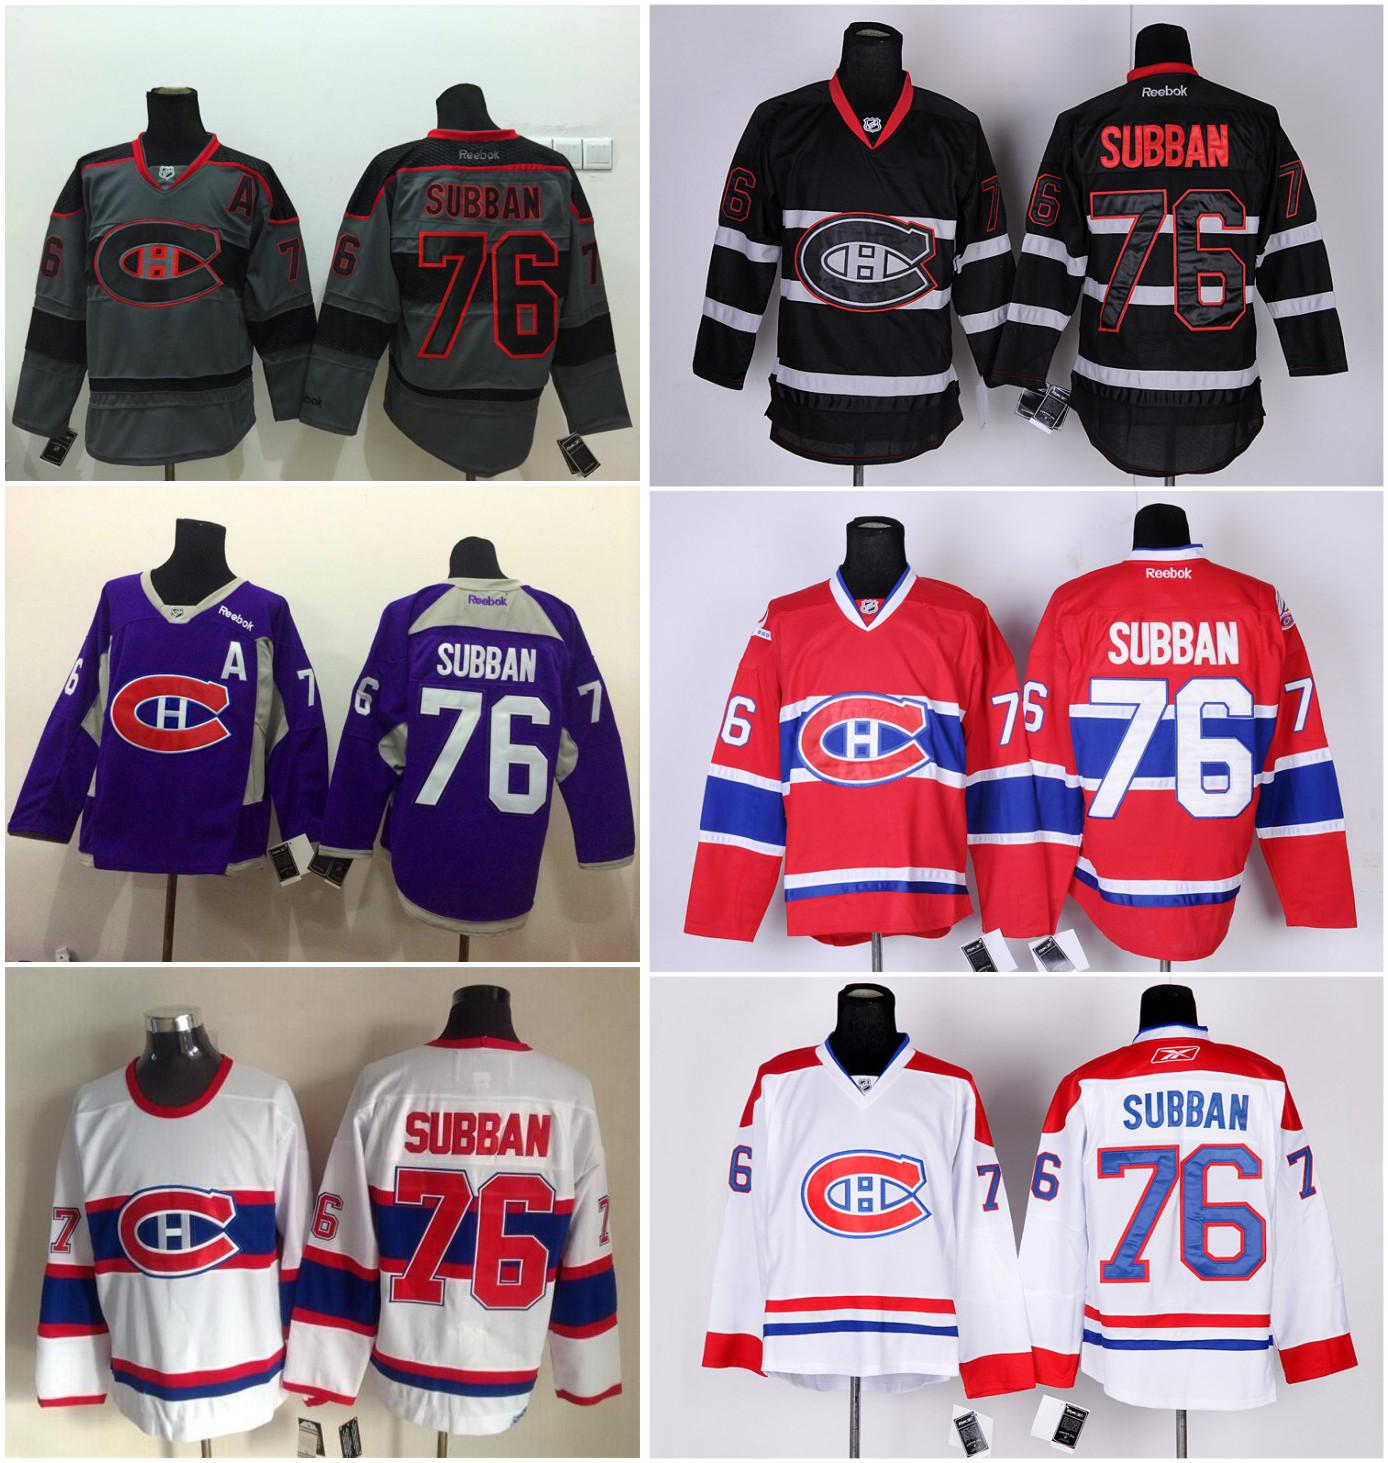 ... Women DHL Montreal Canadiens 76 P-K- Subban Red White Hockey Jersey 266294a67